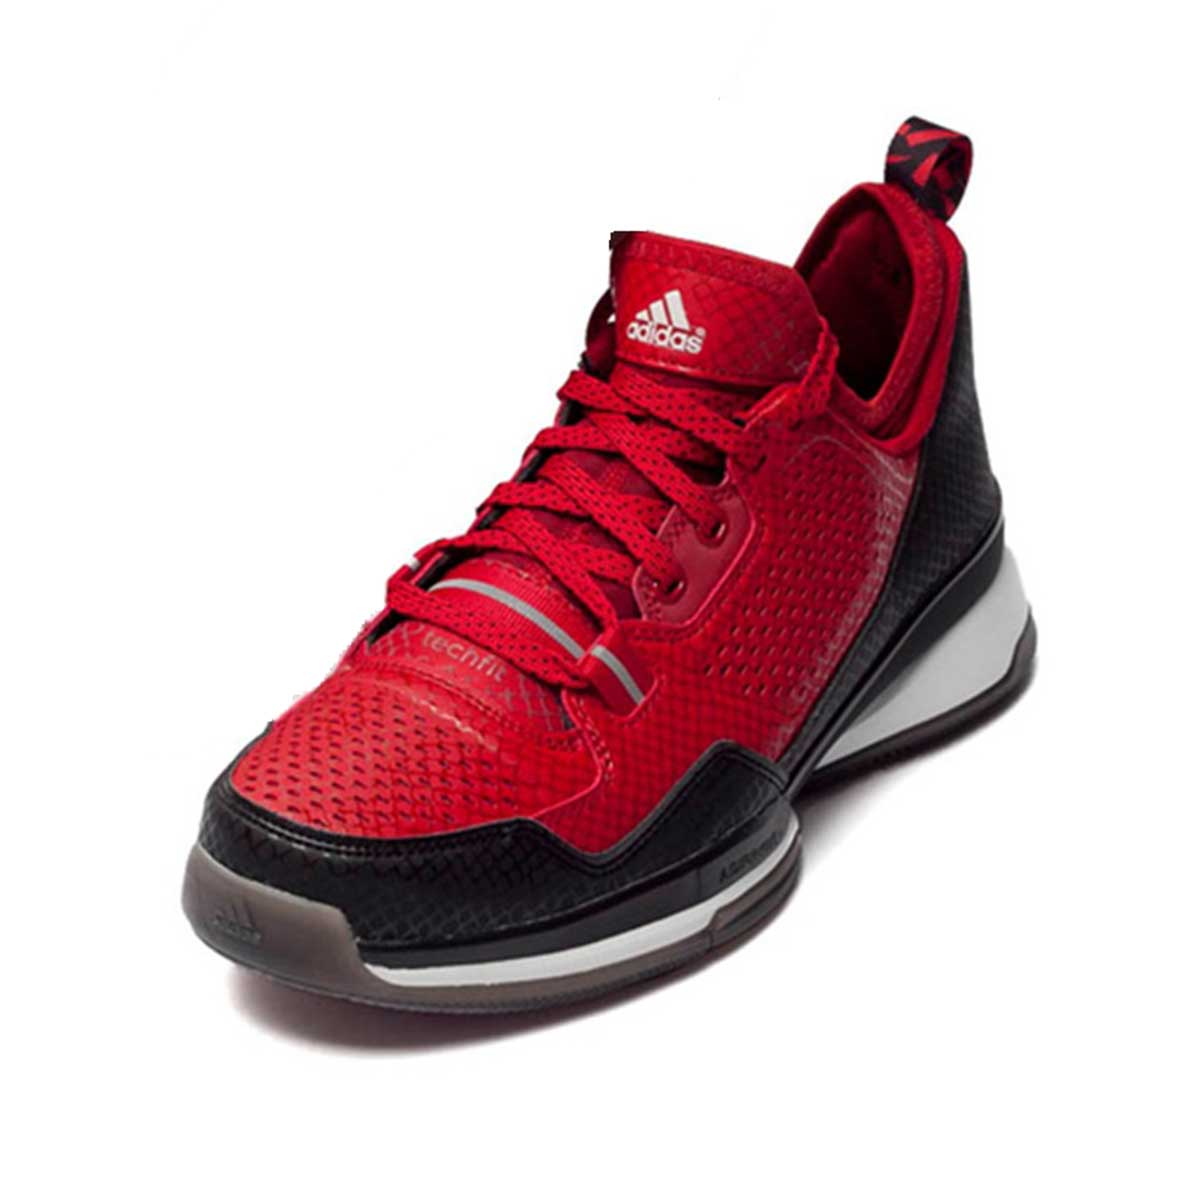 Basketball Shoes, Basketball, Sports, Buy, Adidas, Adidas D Lillard  Basketball Shoes